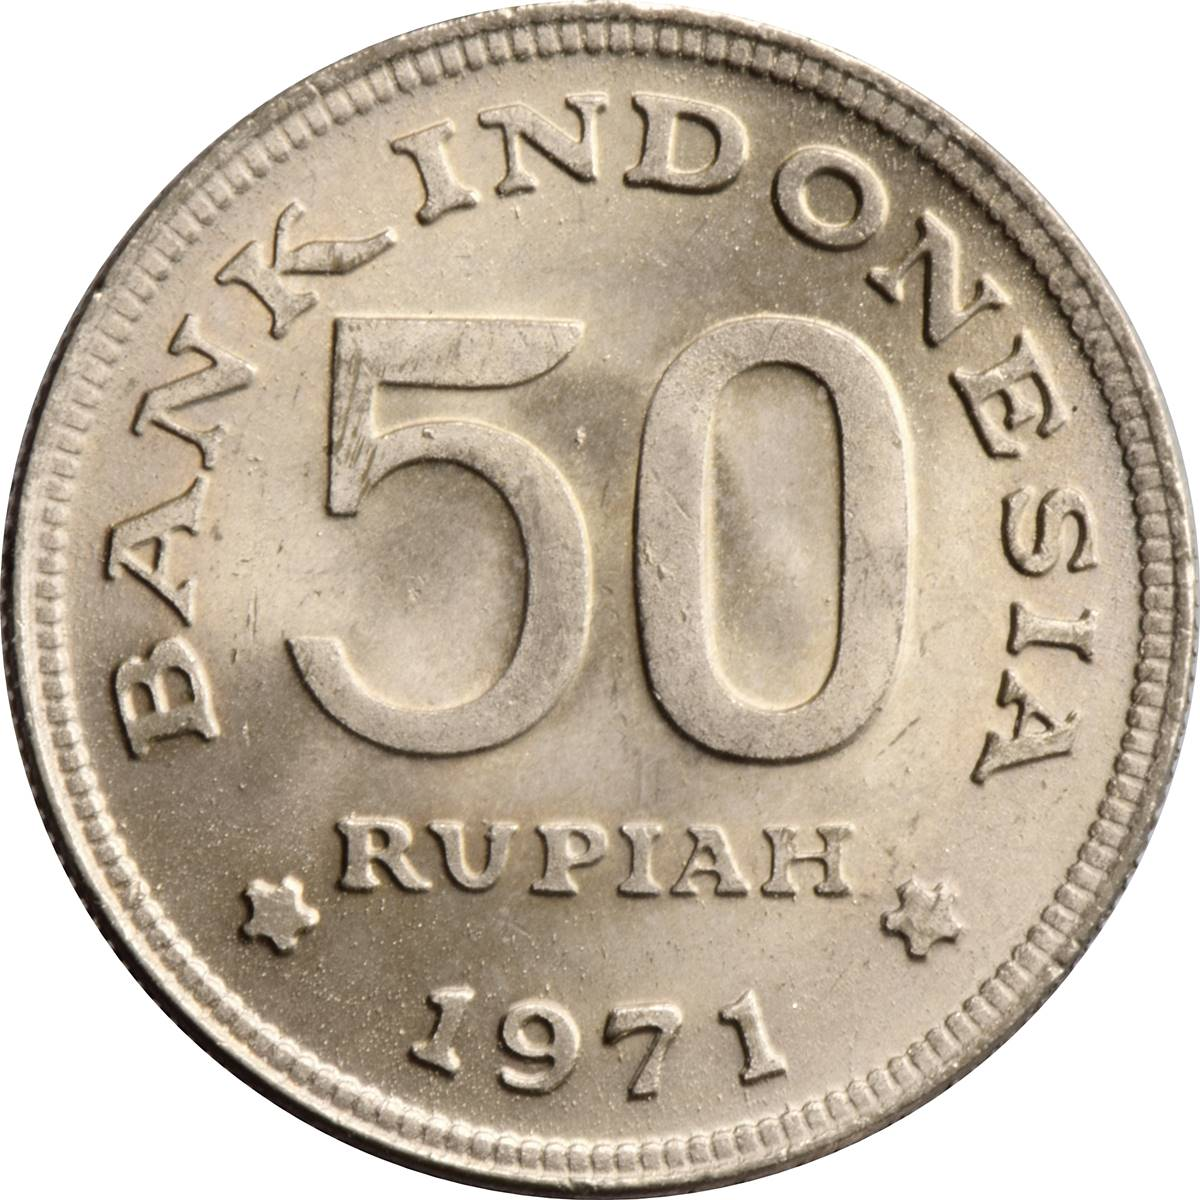 Coins of All Nations Indonesia 25 Rupiah 1971 UNC